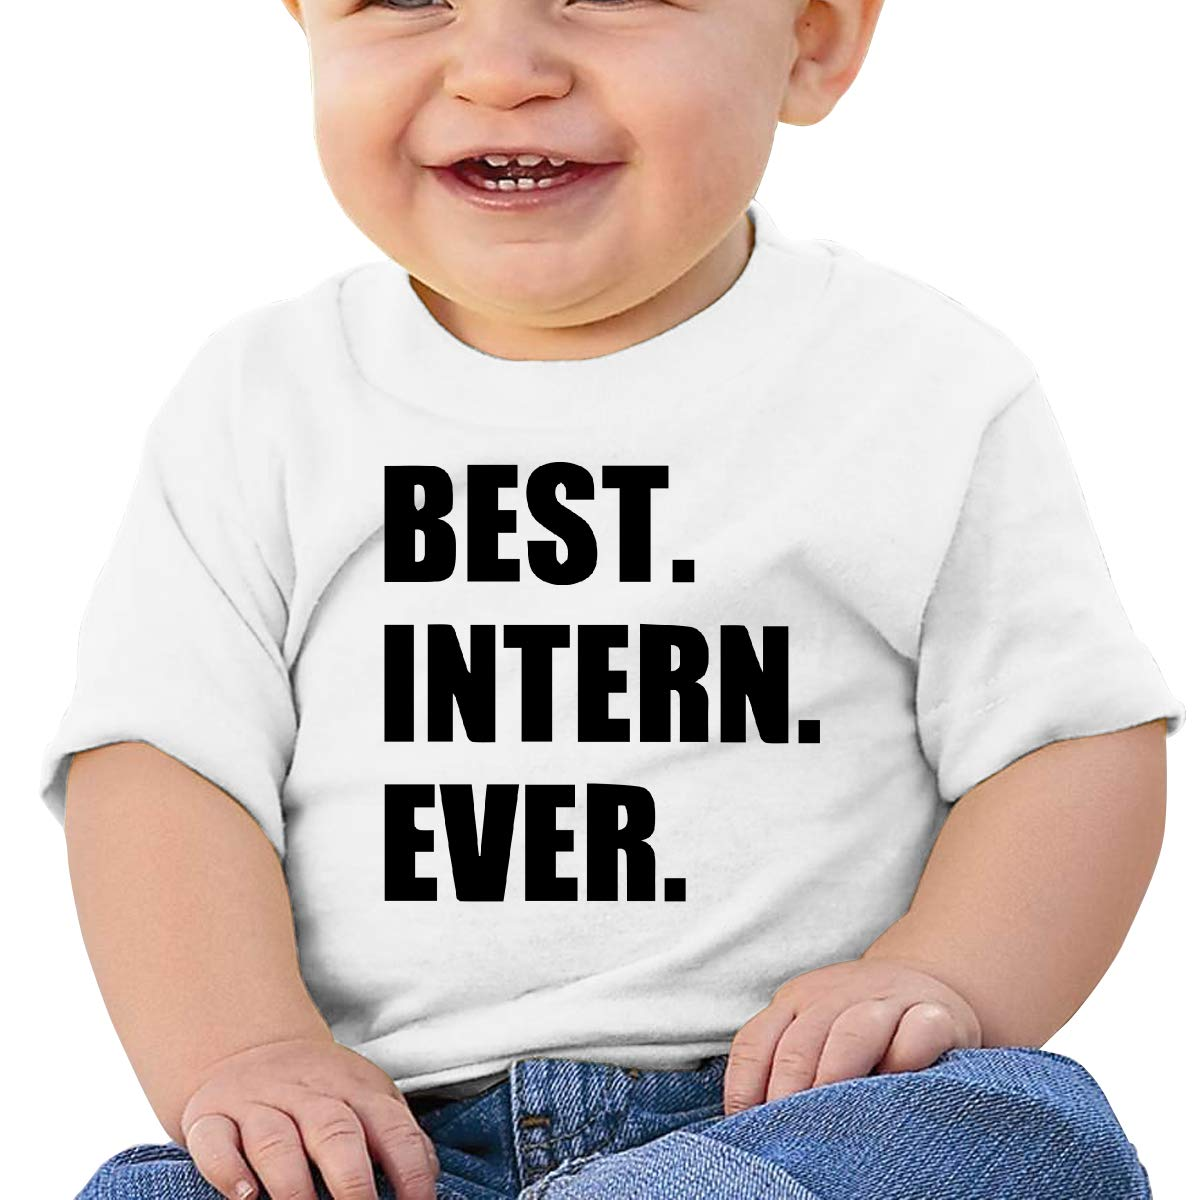 Kangtians Baby Best Intern Ever Shirt Toddler Cotton Tee